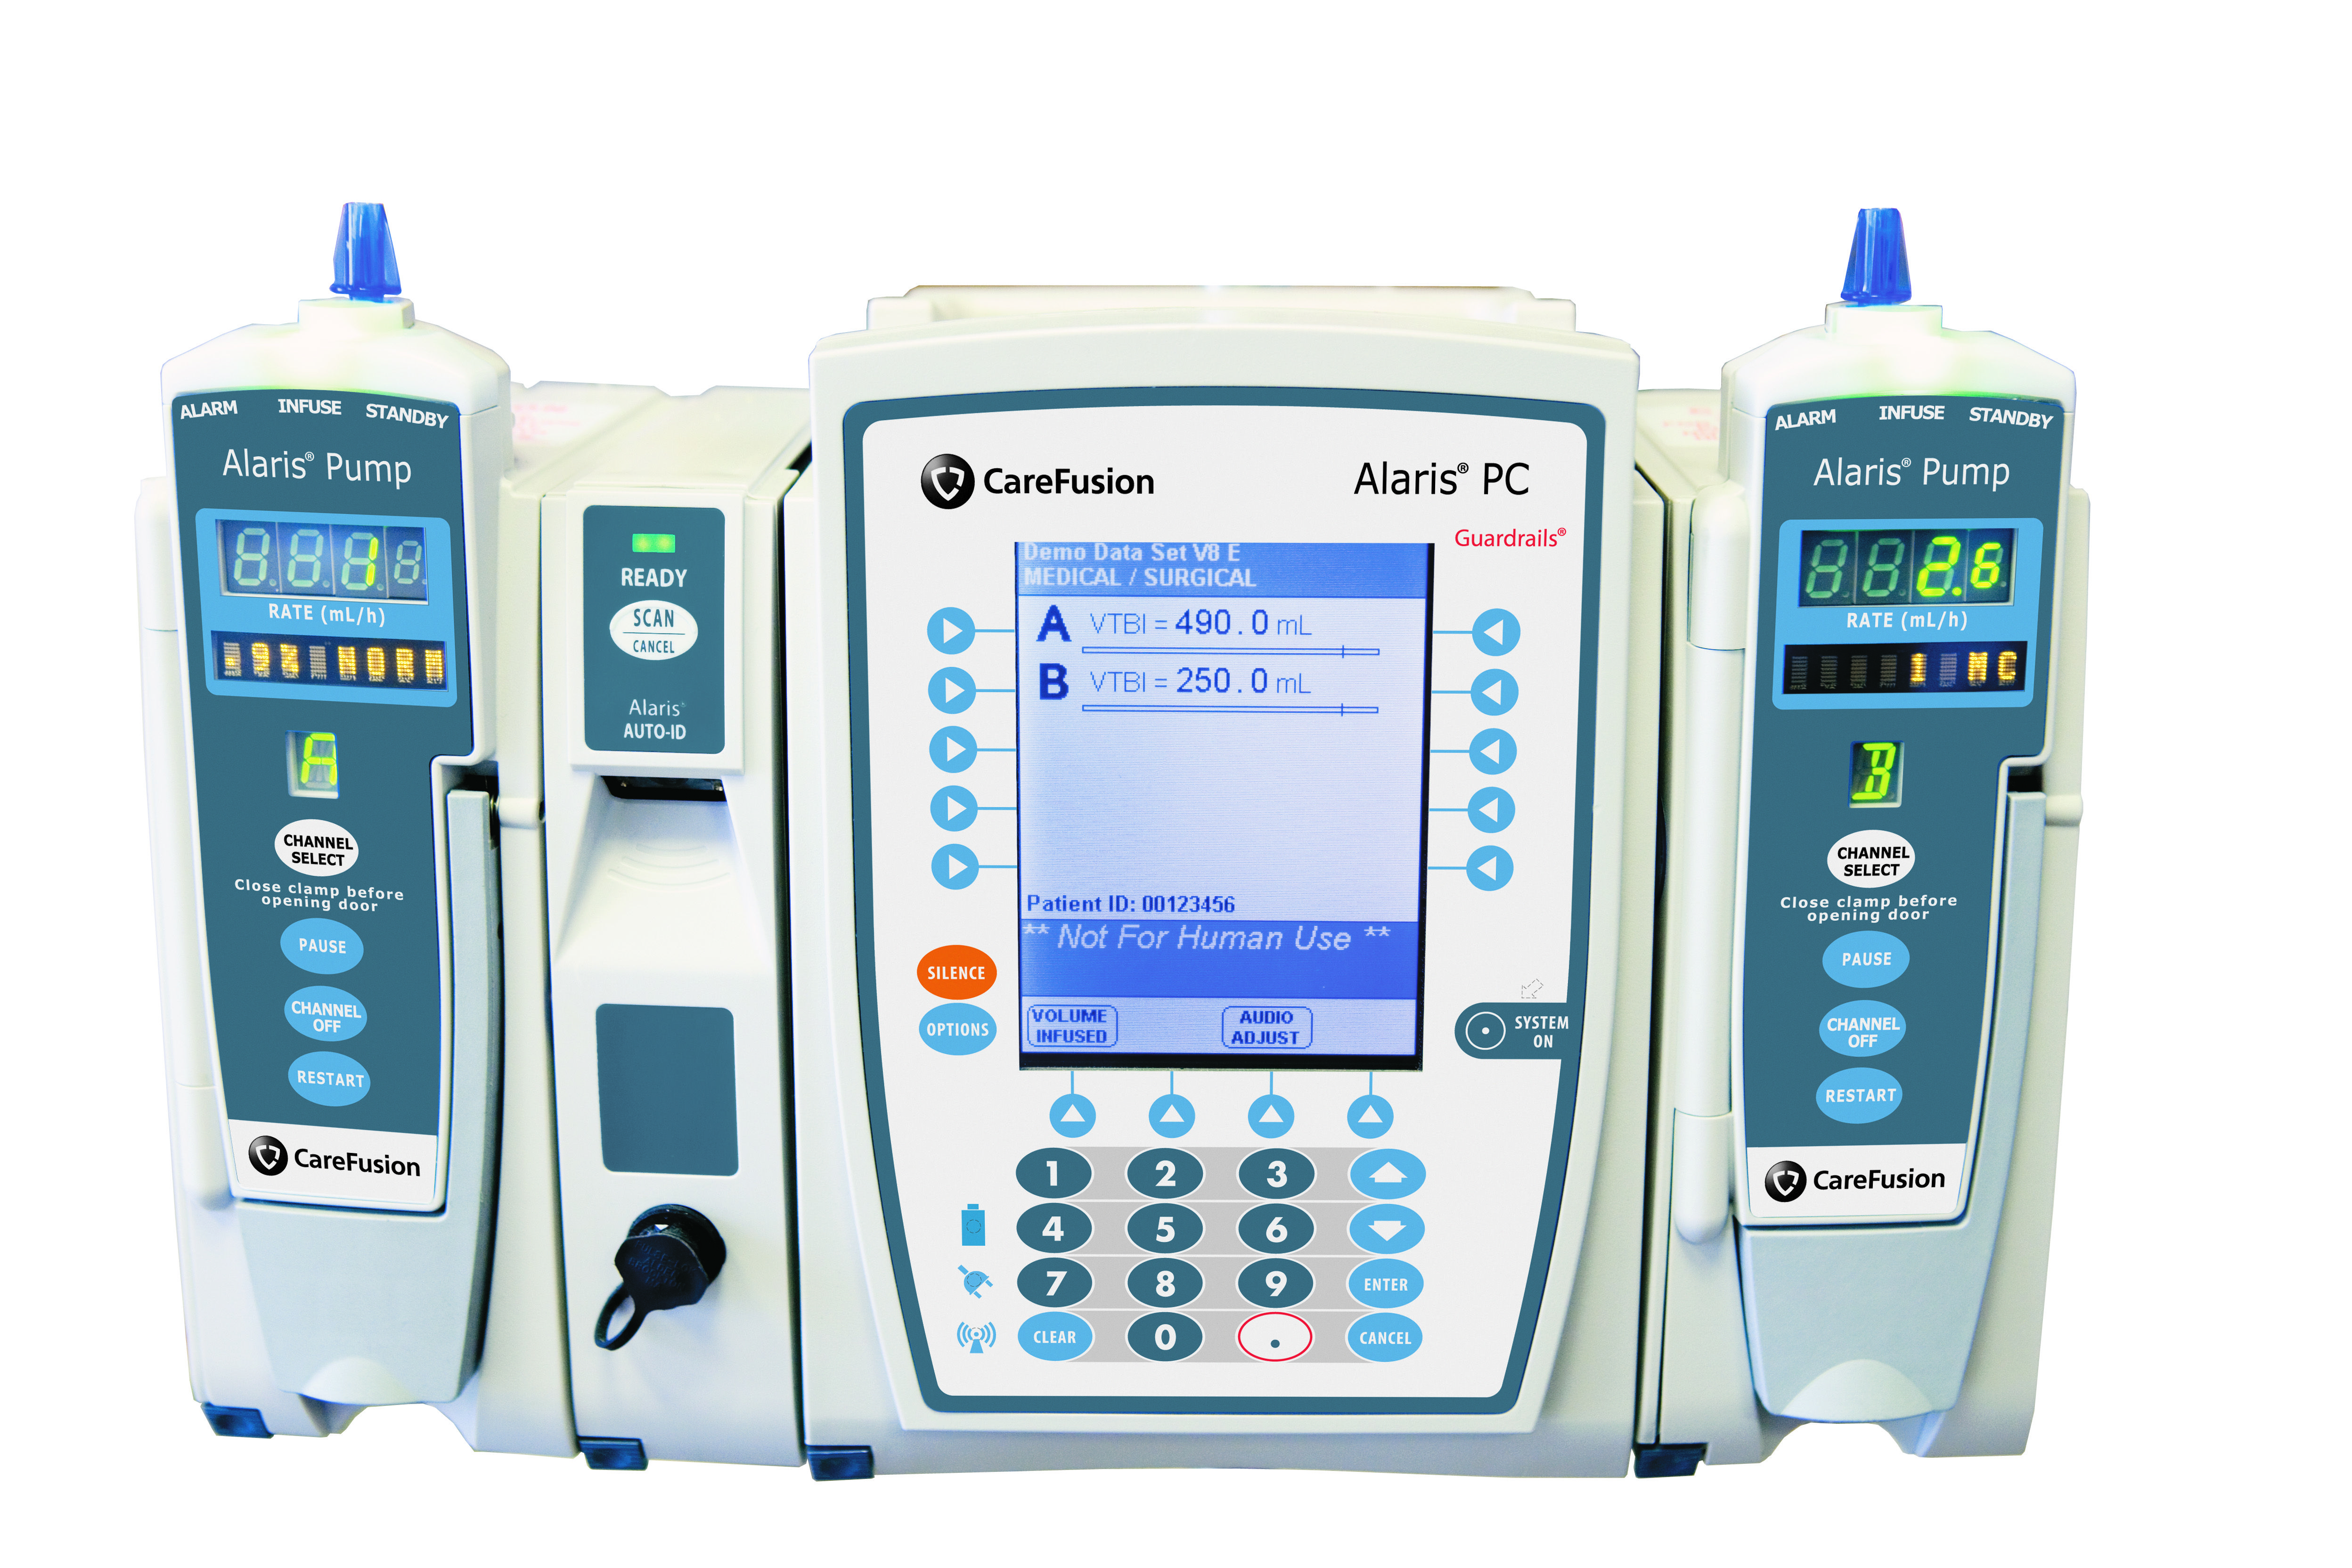 Carefusion Alaris Pump Iv Infusion Model Information